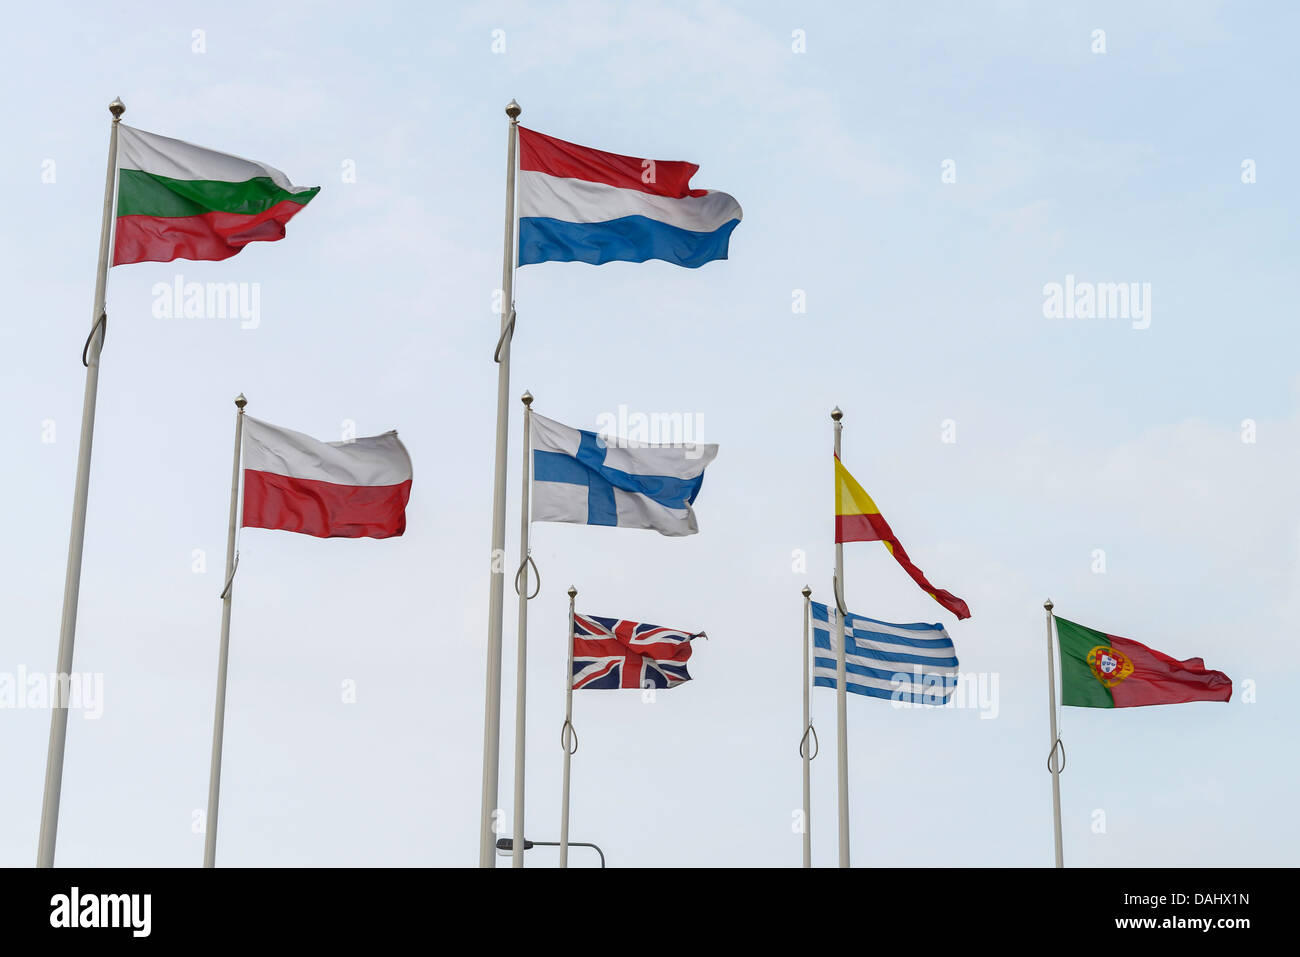 The flags of European countries - Stock Image